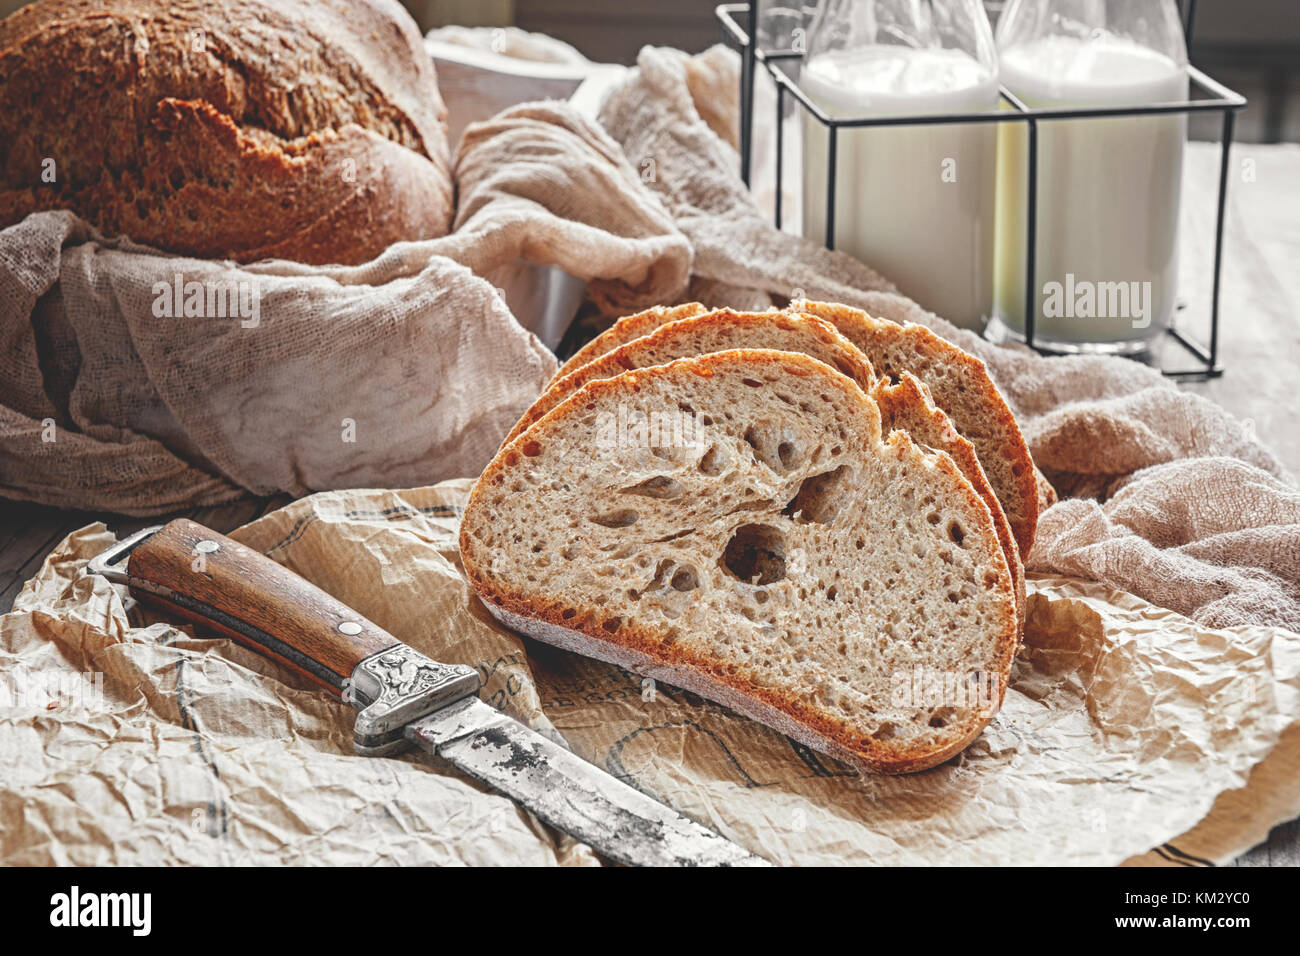 A beautiful loaf of sourdough bread from white wheat on a plate on a linen edge. Homemade pastries. - Stock Image